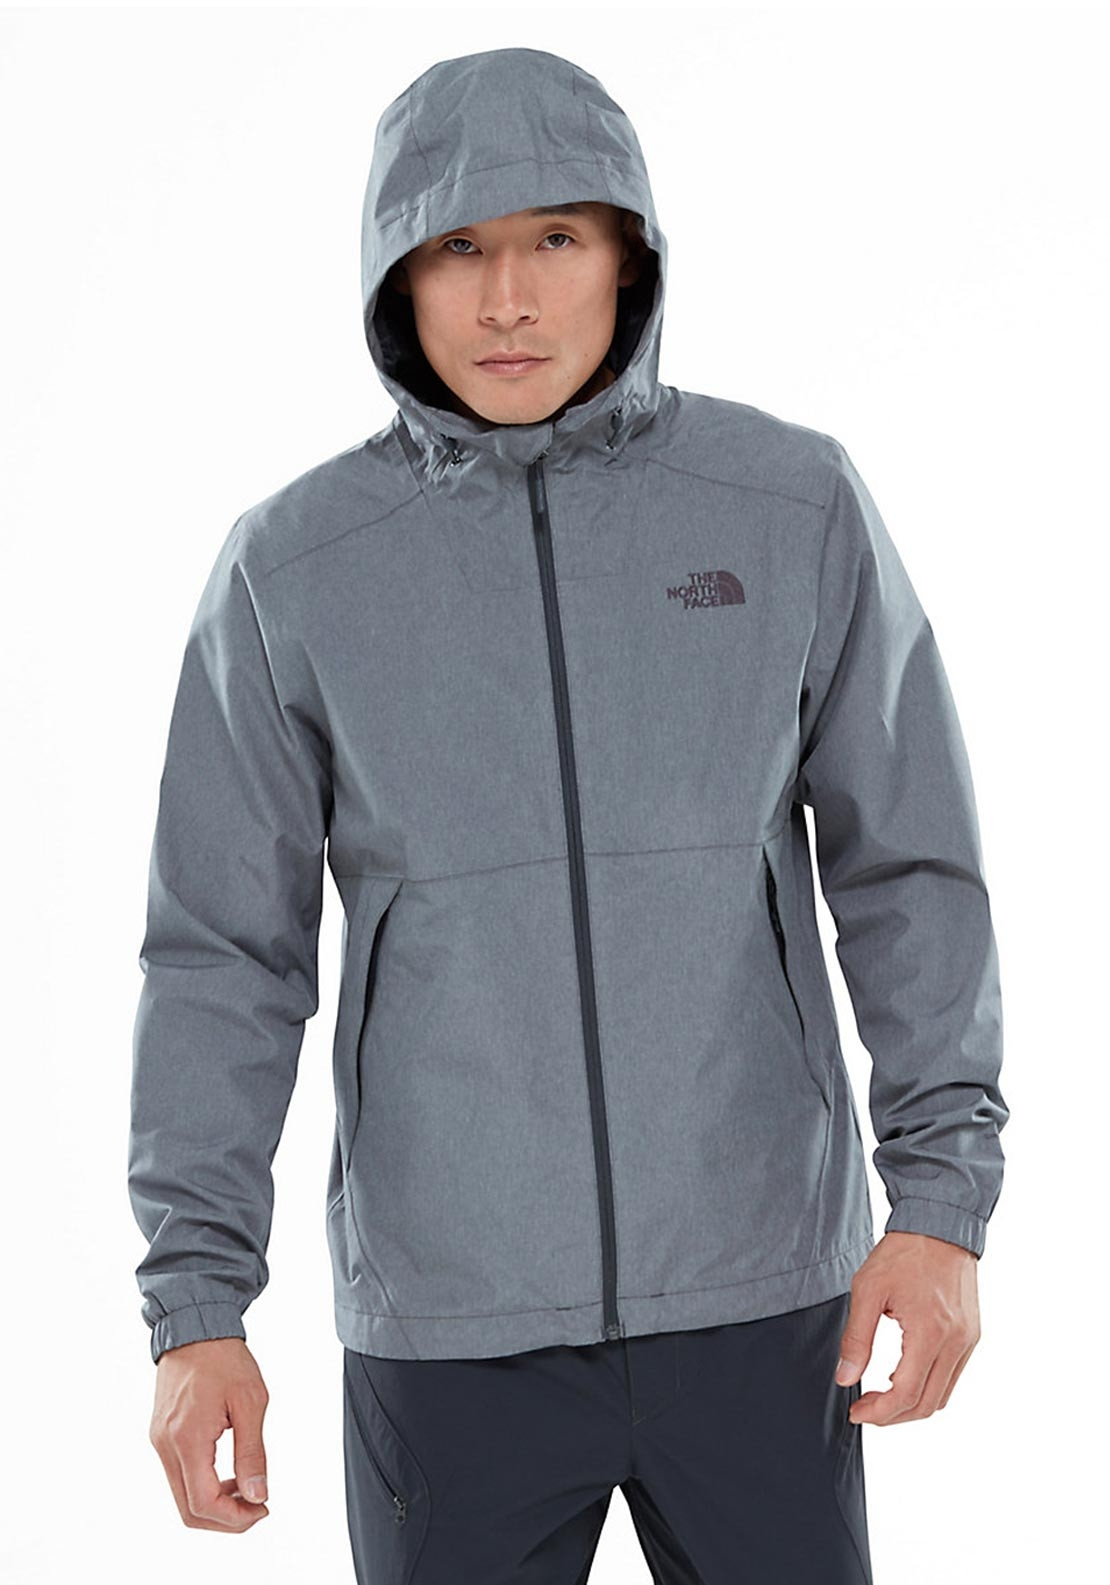 aa9c18d34e6f The North Face Men s Millerton Jacket